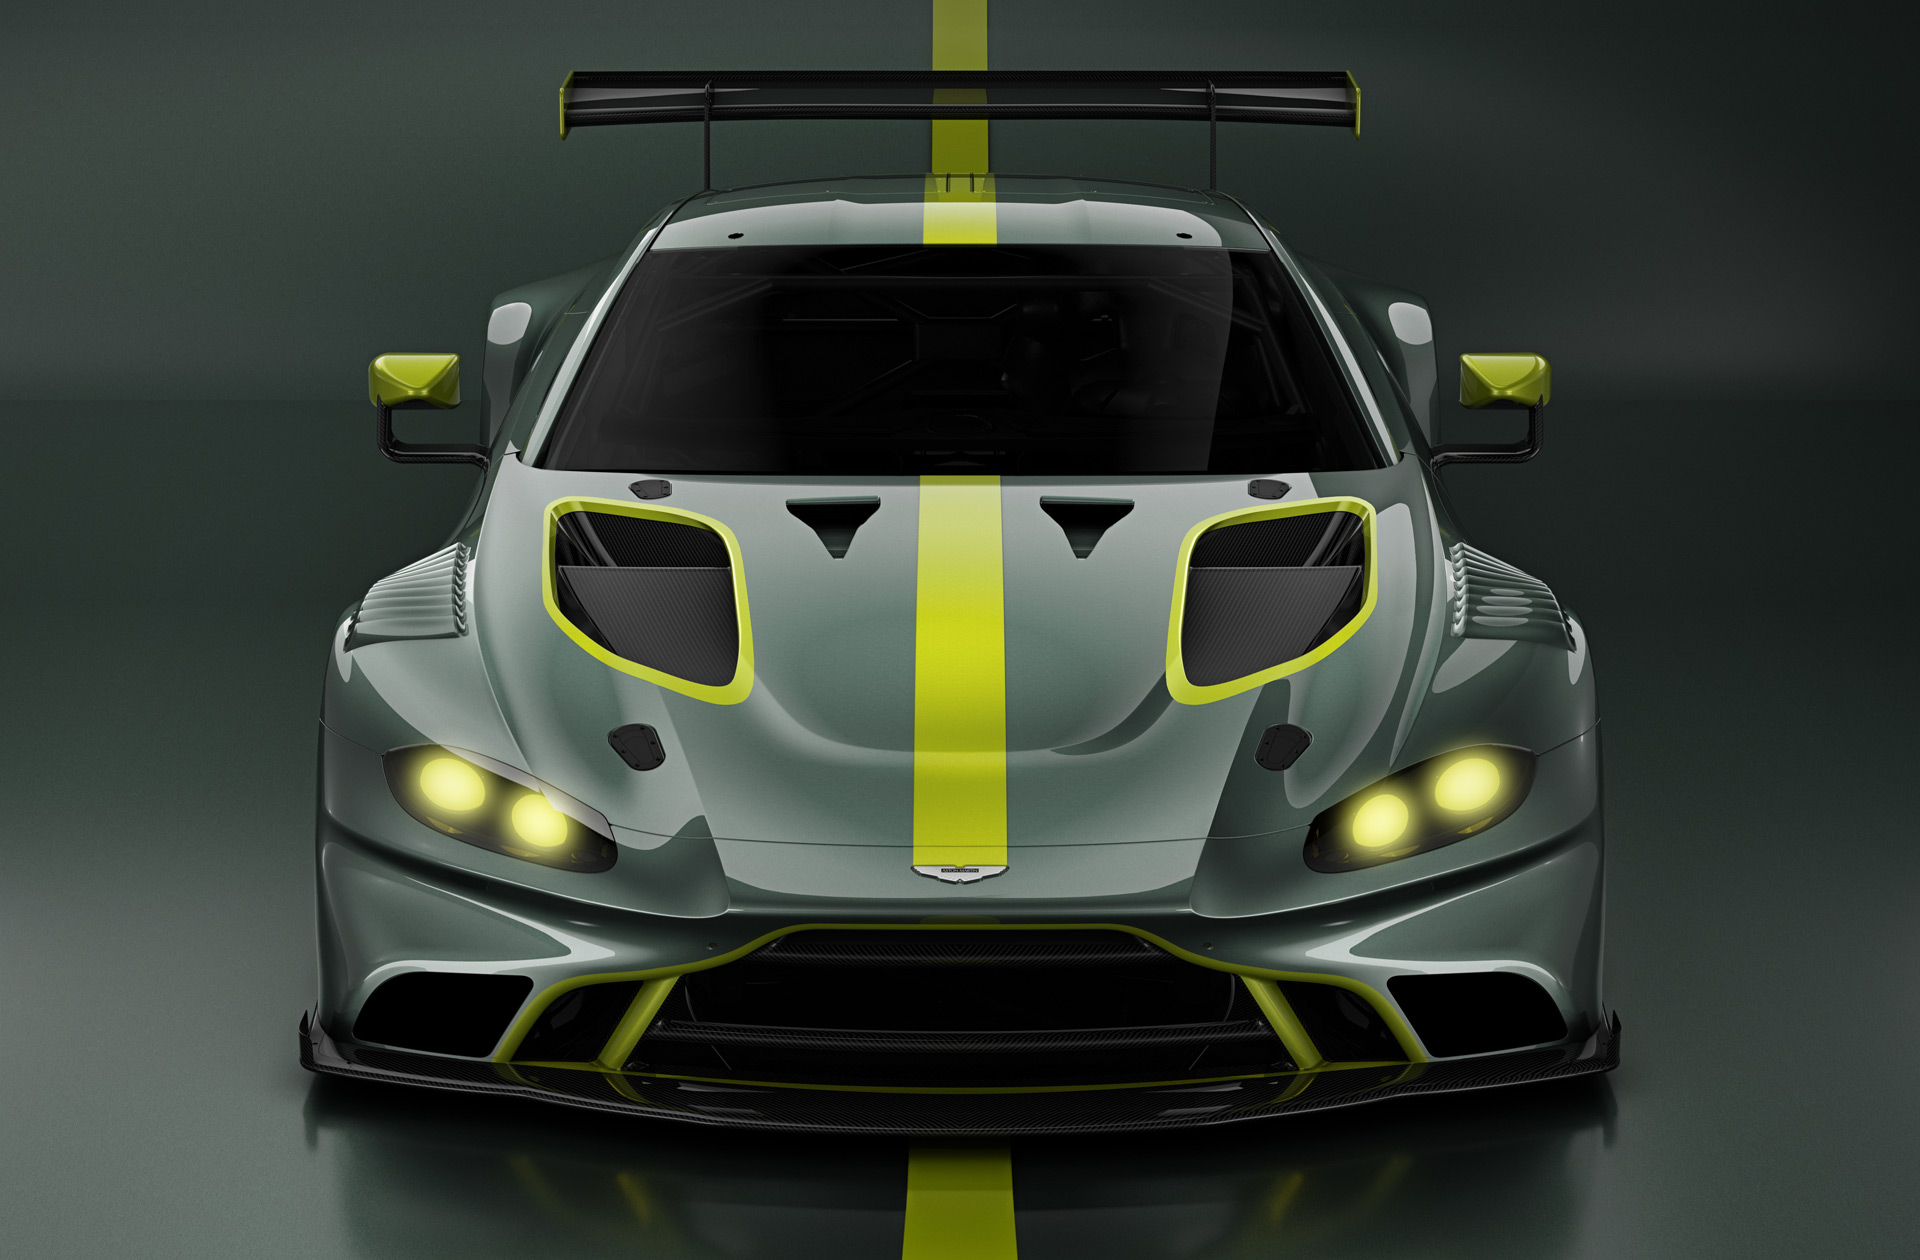 Aston Martin Announces Plans For New Vantage Gt3 And Gt4 Cars Arab Motor World